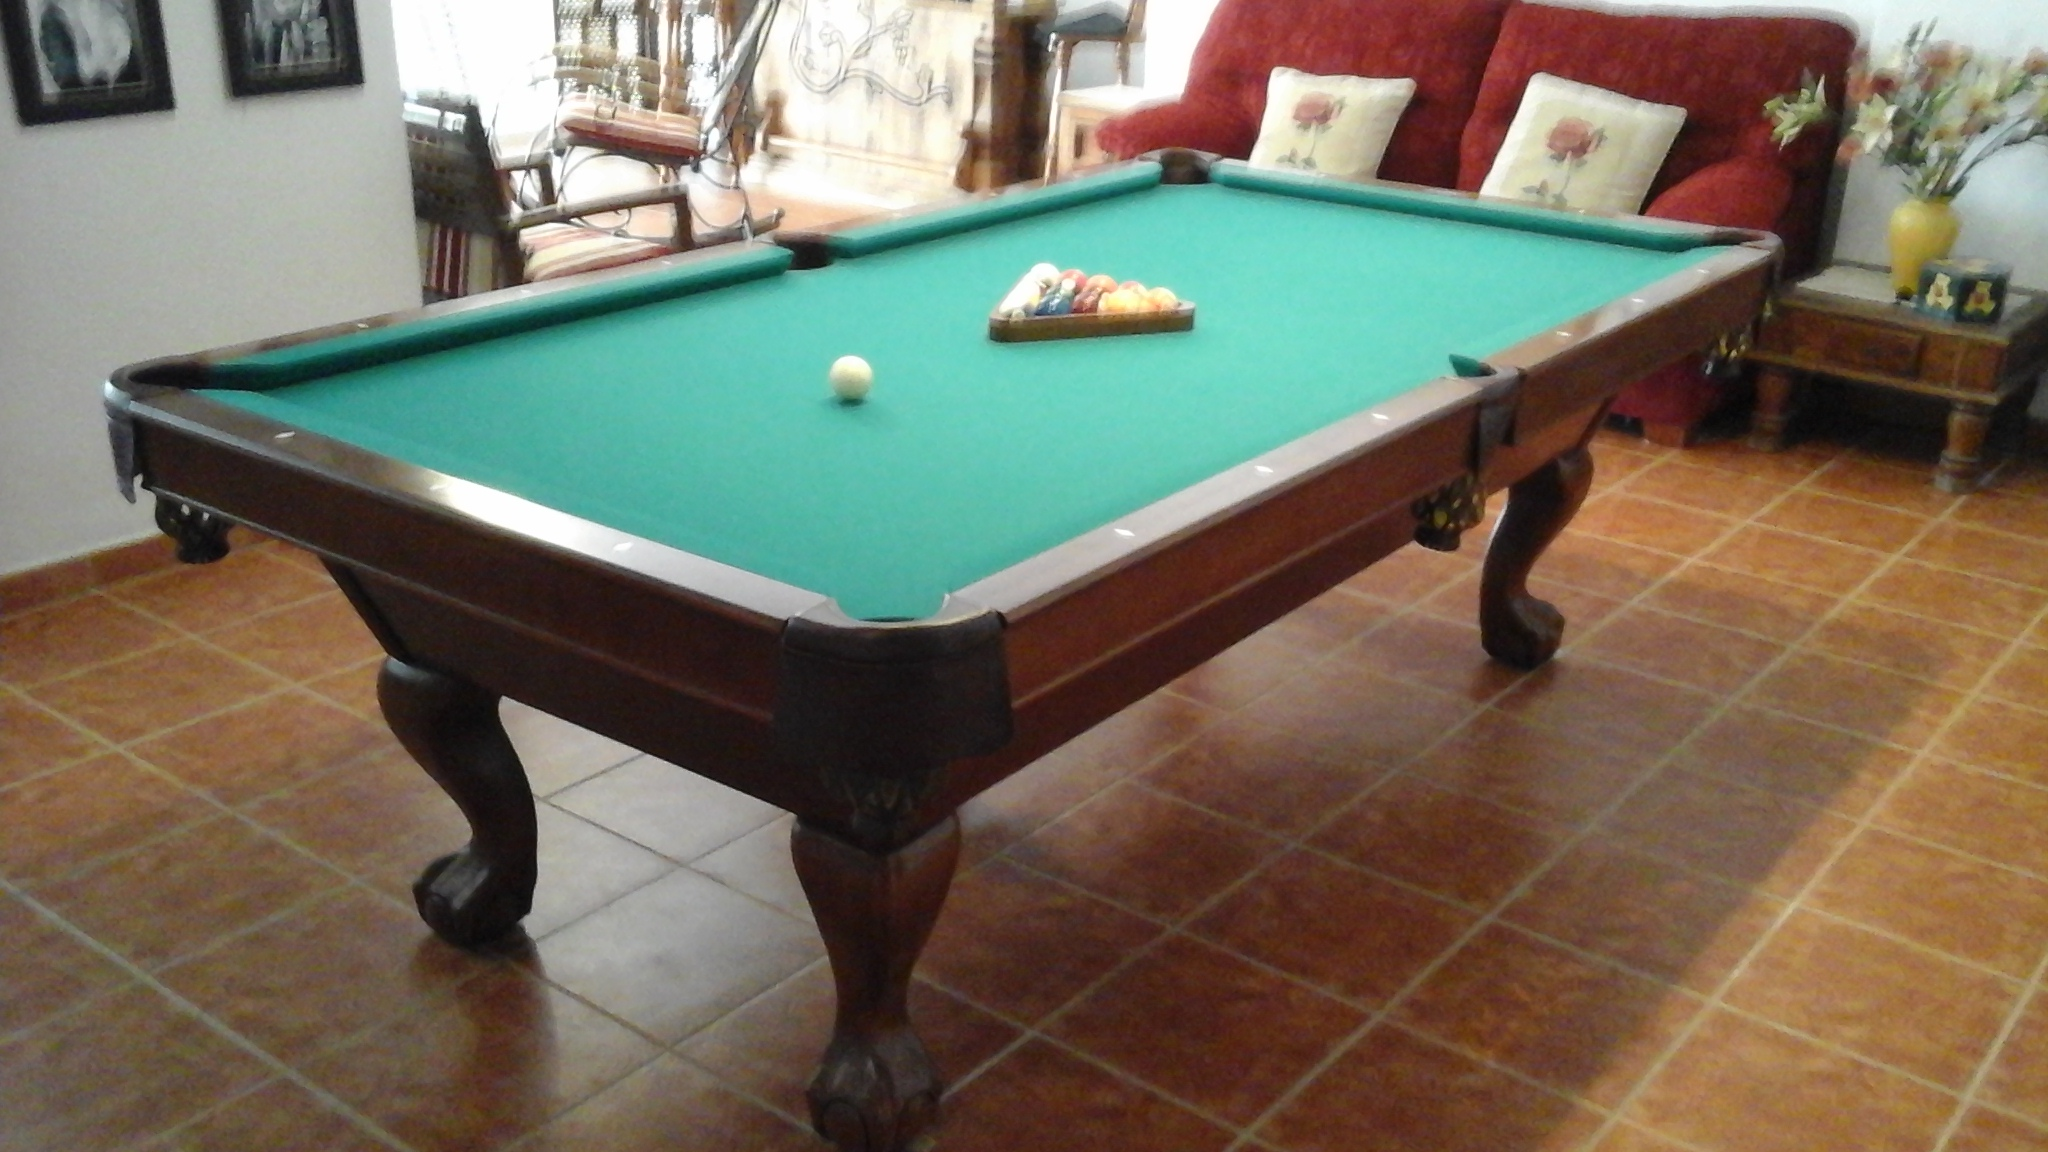 For Sale Brunswick Contender Pool Table Buy And Sell Items In - Brunswick contender pool table for sale